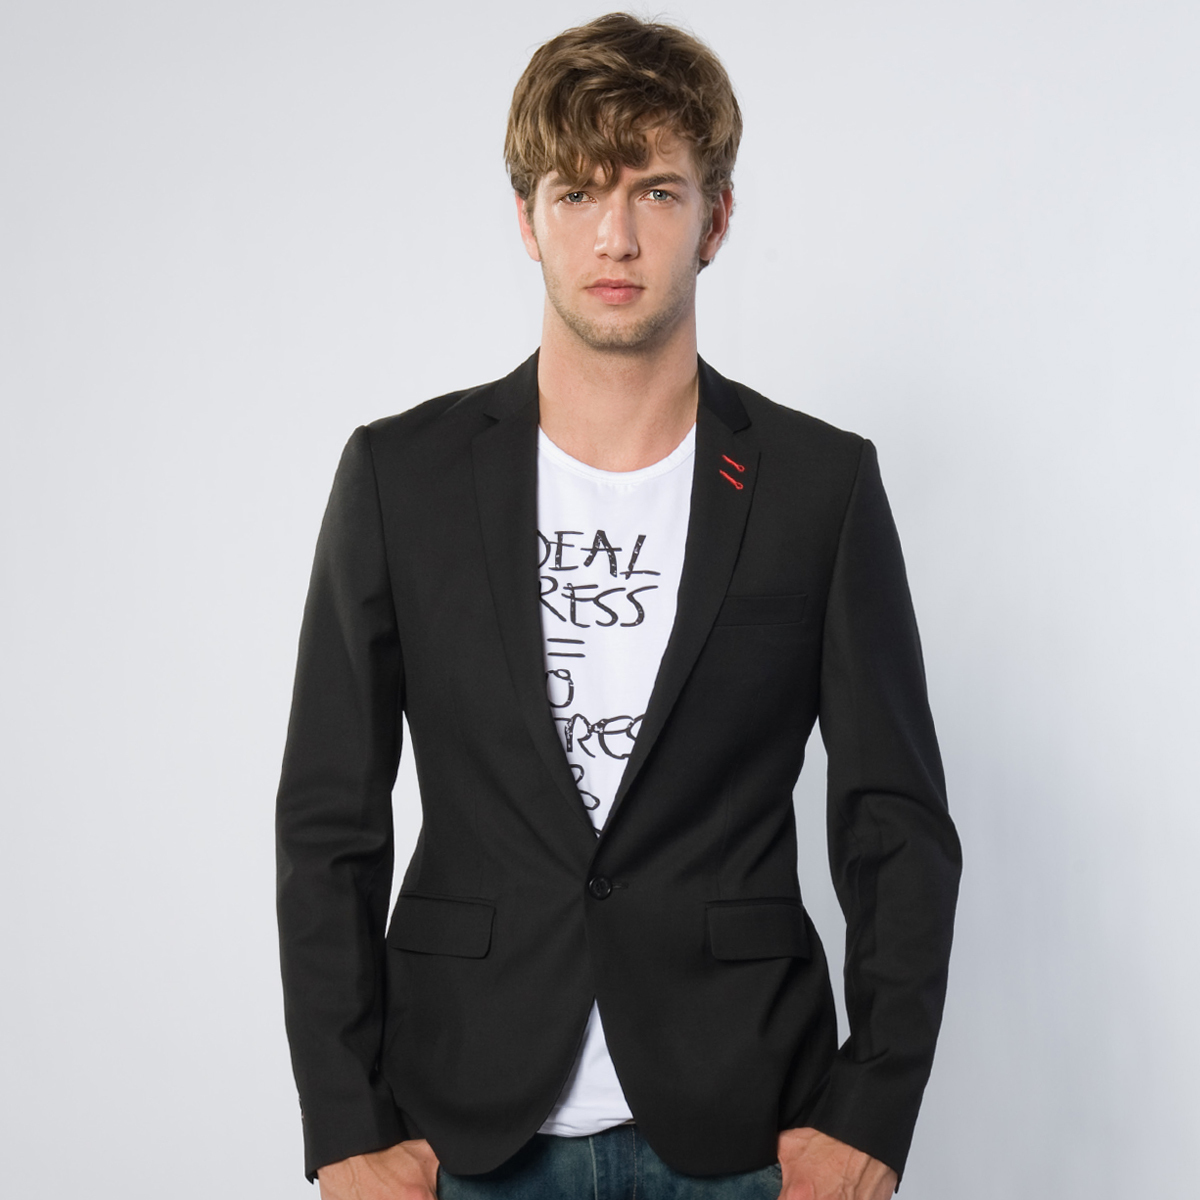 Business Casual Attire - HELP ME MISC   Reps srs - Bodybuilding ...